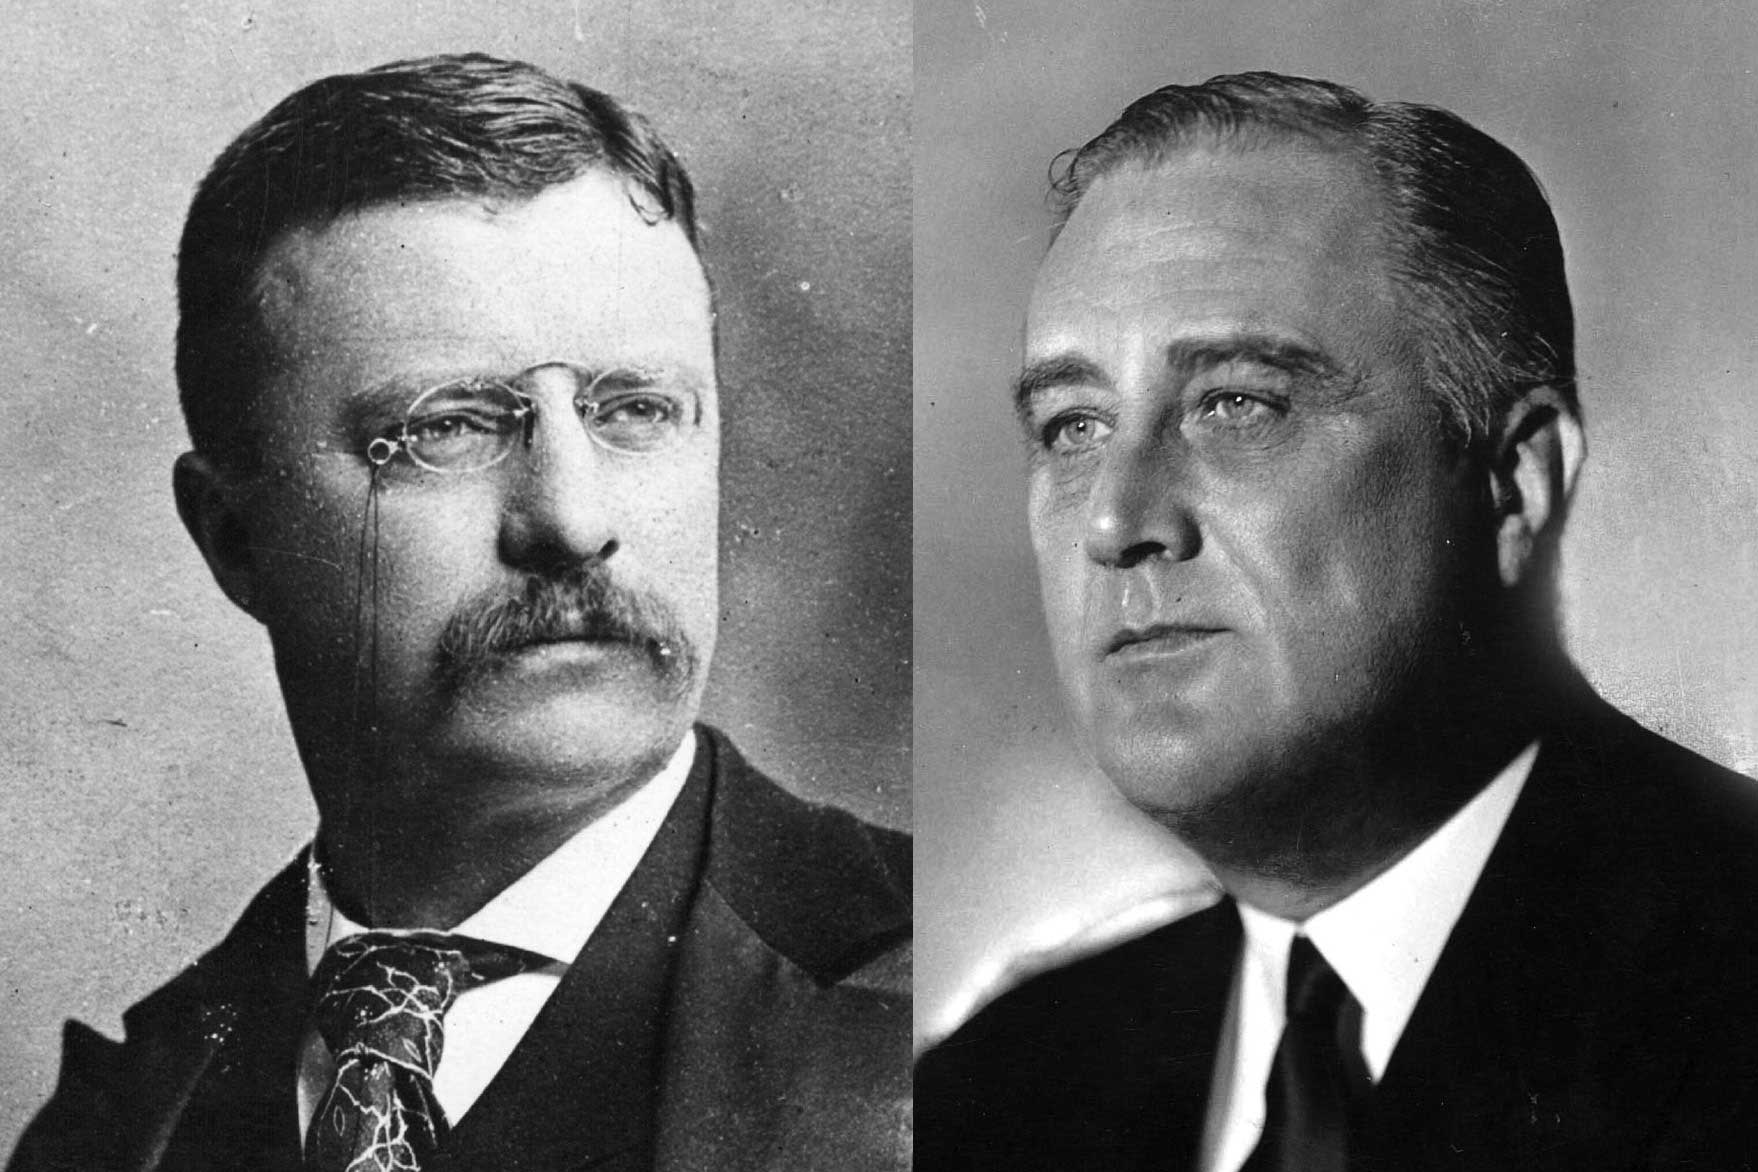 Theodore Roosevelt first become president after the assassination of President McKinley in 1901 and served until 1909. Franklin Roosevelt was a great admirer of his fifth cousin Theodore, and became President himself, serving from 1933 to 1945, the longest consecutive administration in America's history.